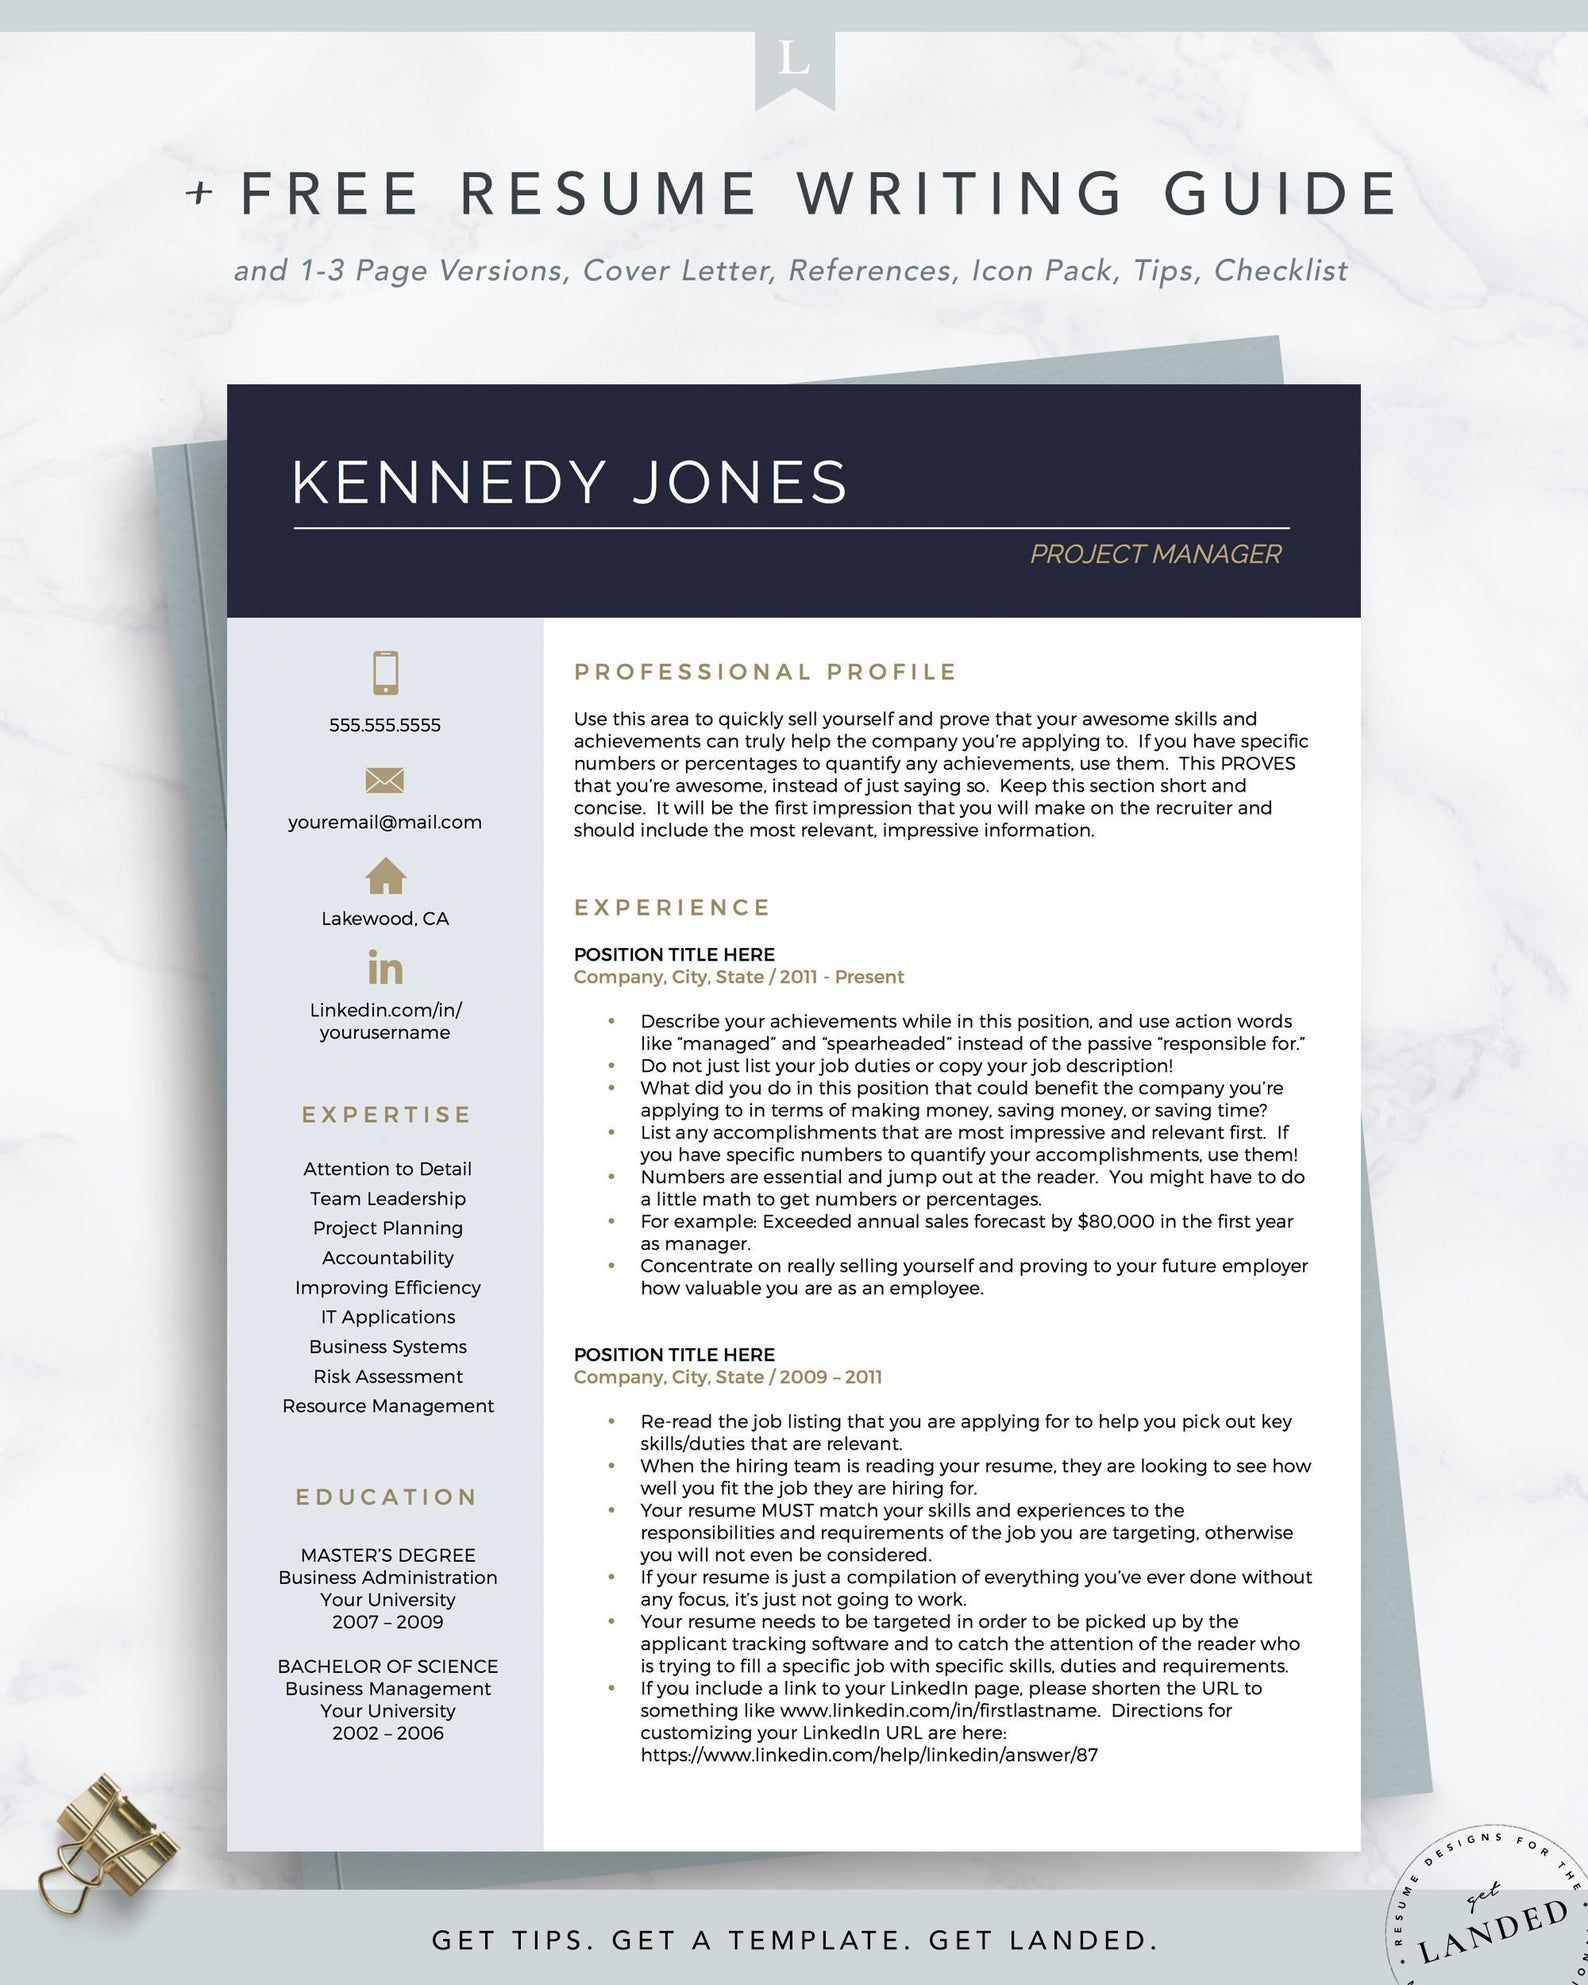 Project Manager Resume Template Creative CV Template for